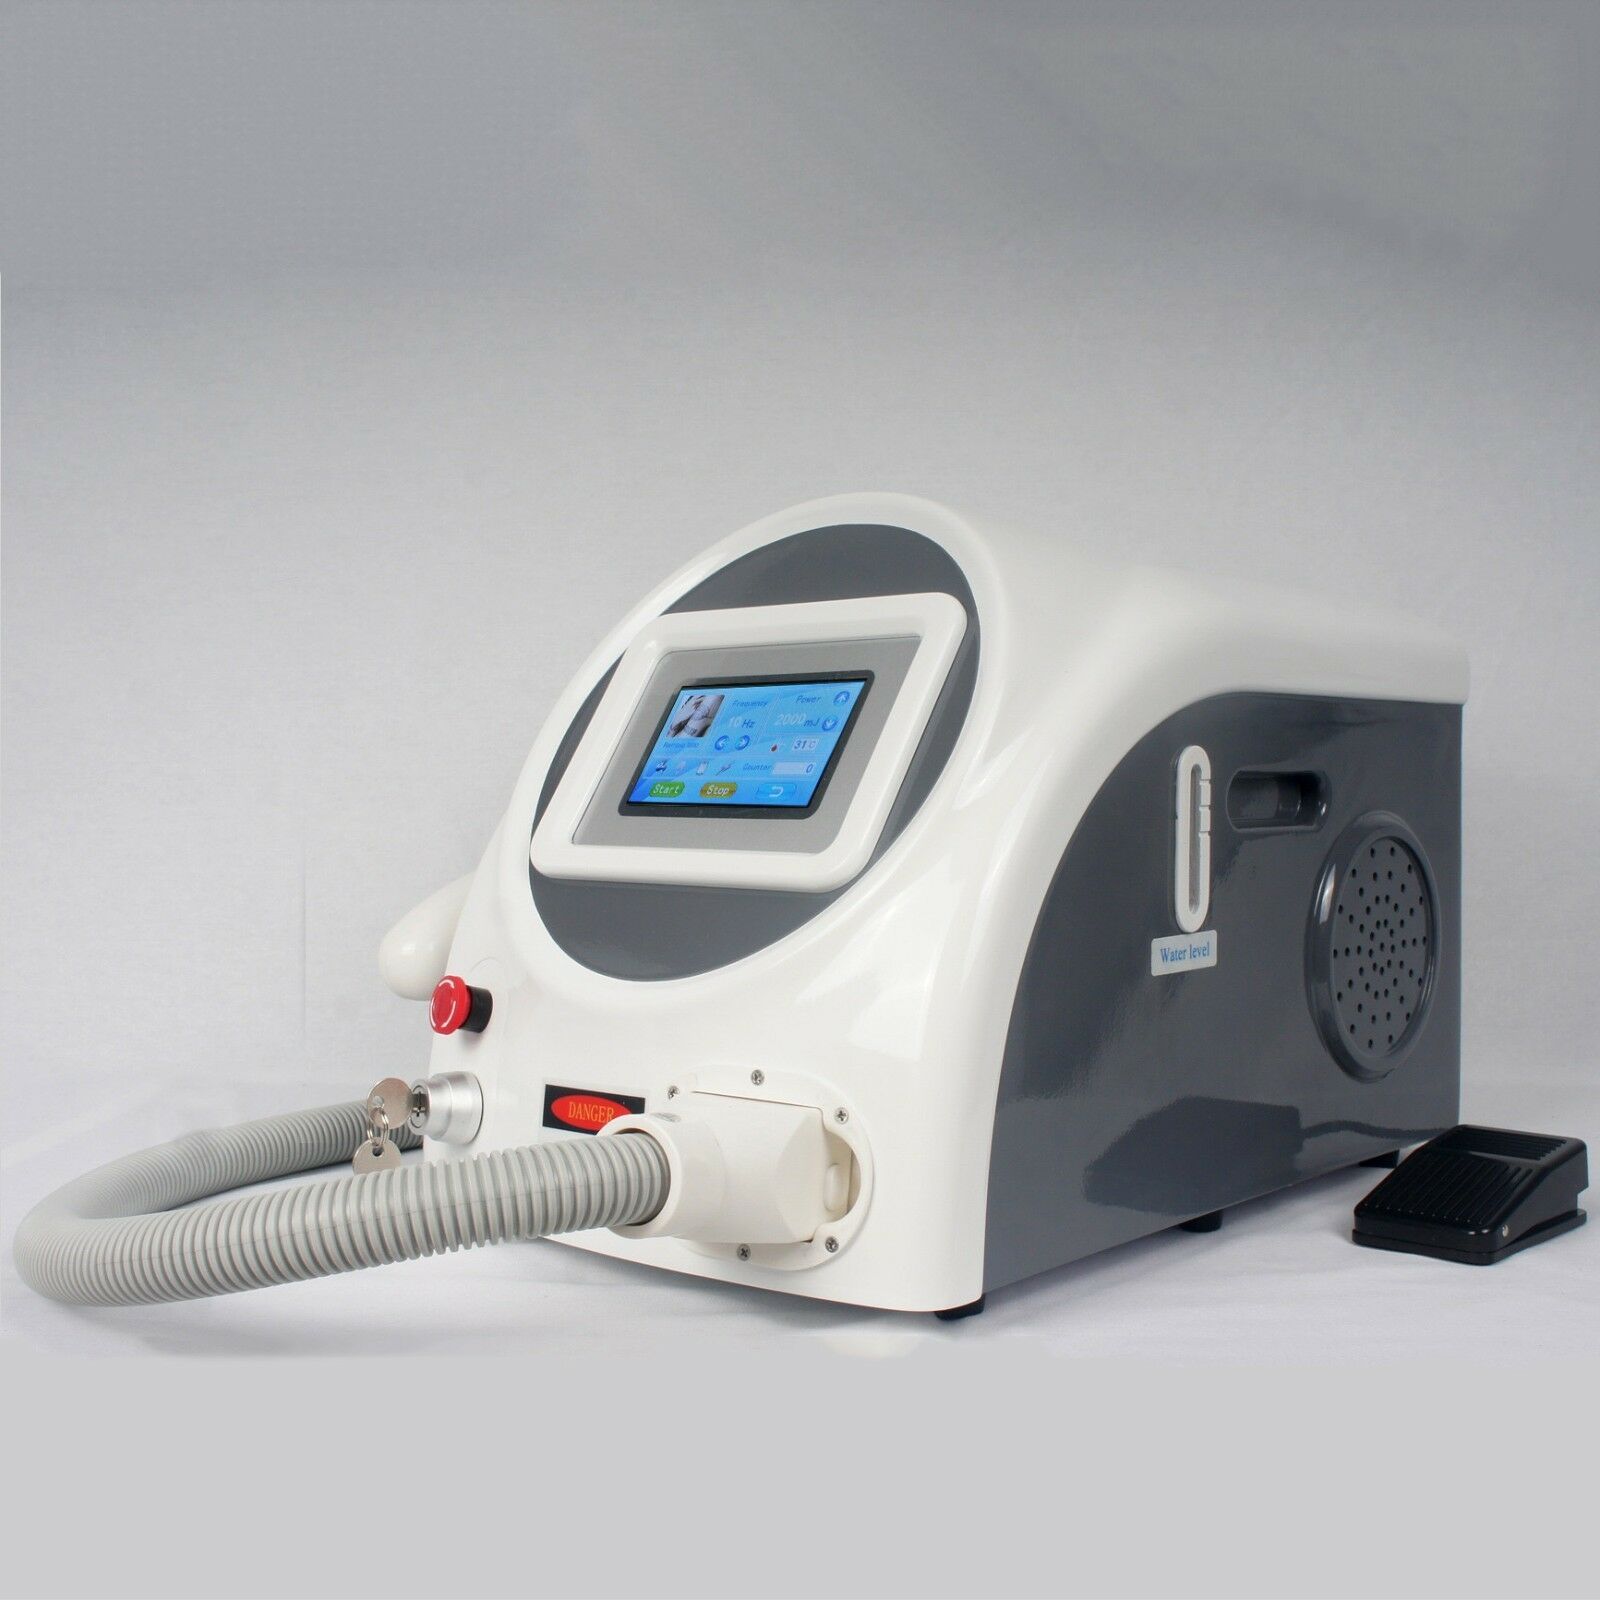 Tattoo Scar Removal 532nm 1064nm Q Switch ND Yag Laser Machine For Clinic Use